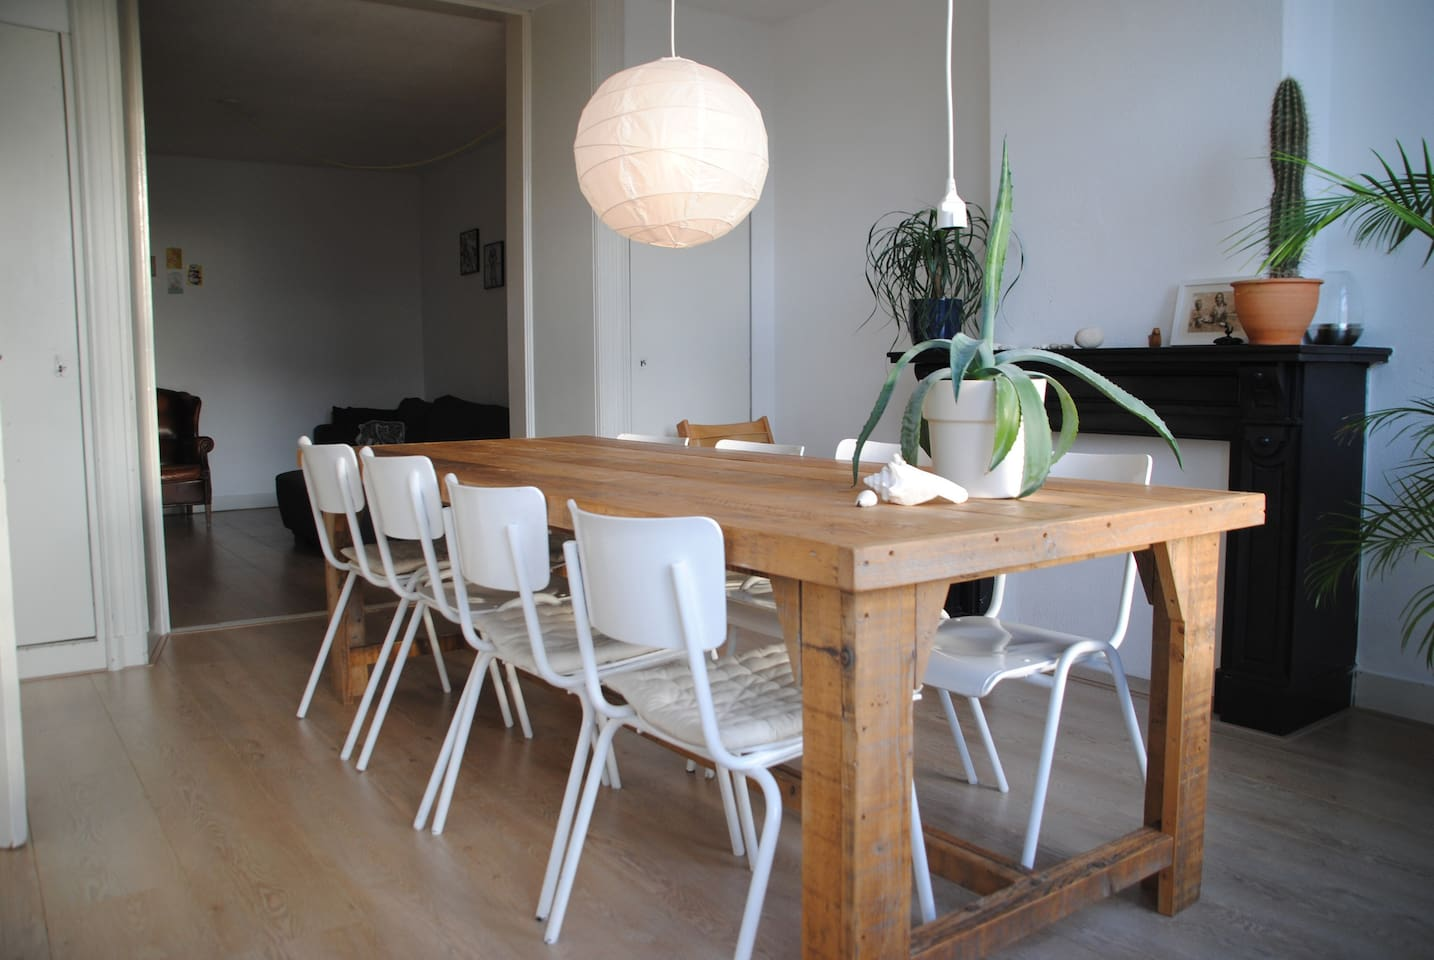 Dining room with big table and Stokke TripTrap baby chair.